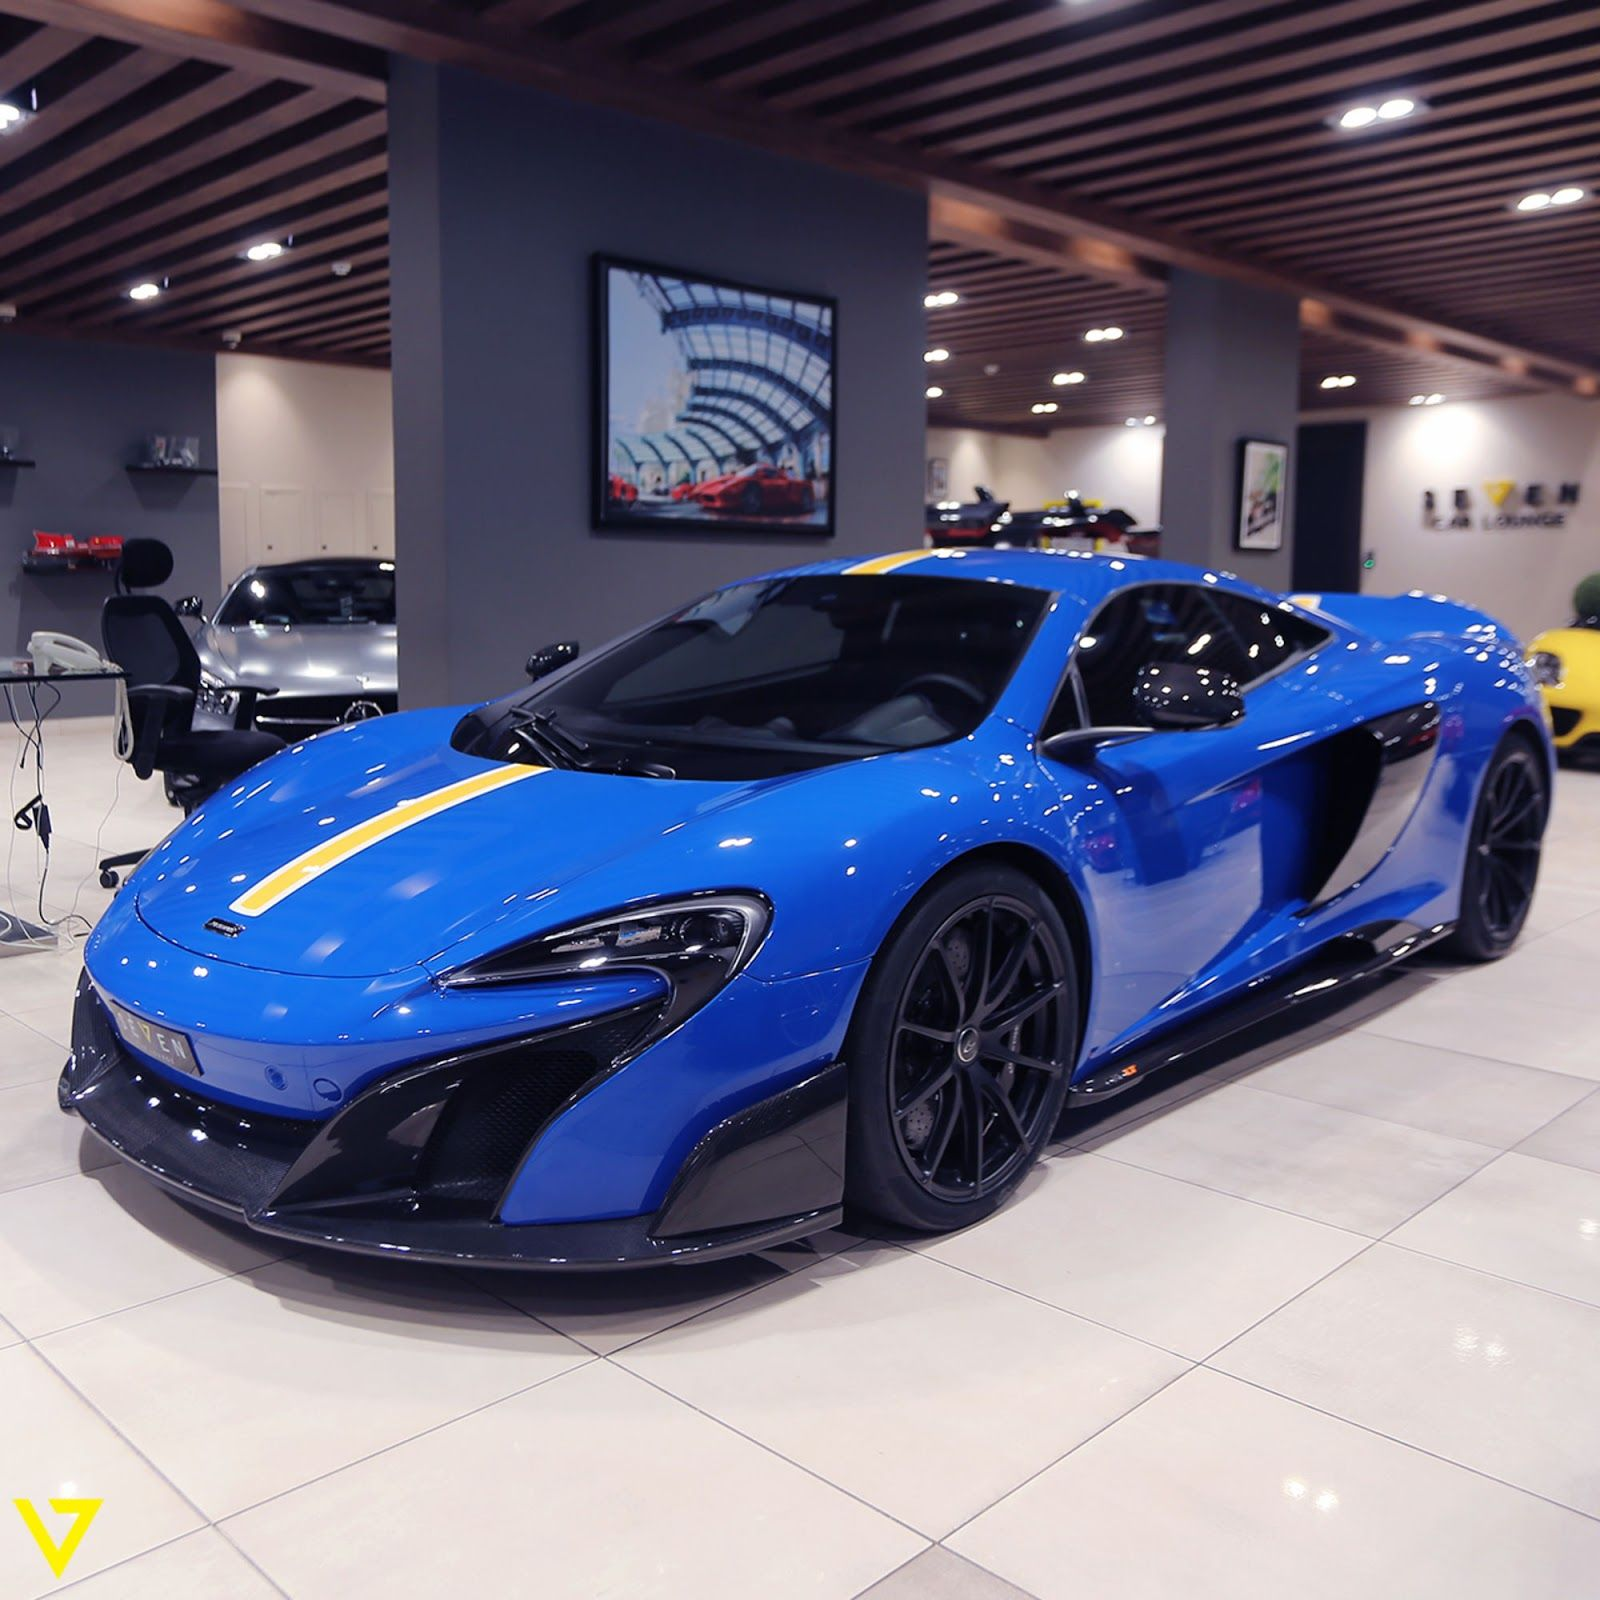 Mclaren 675lt For Sale >> You Ll Either Love Or Hate This Blue And Yellow Mclaren 675lt